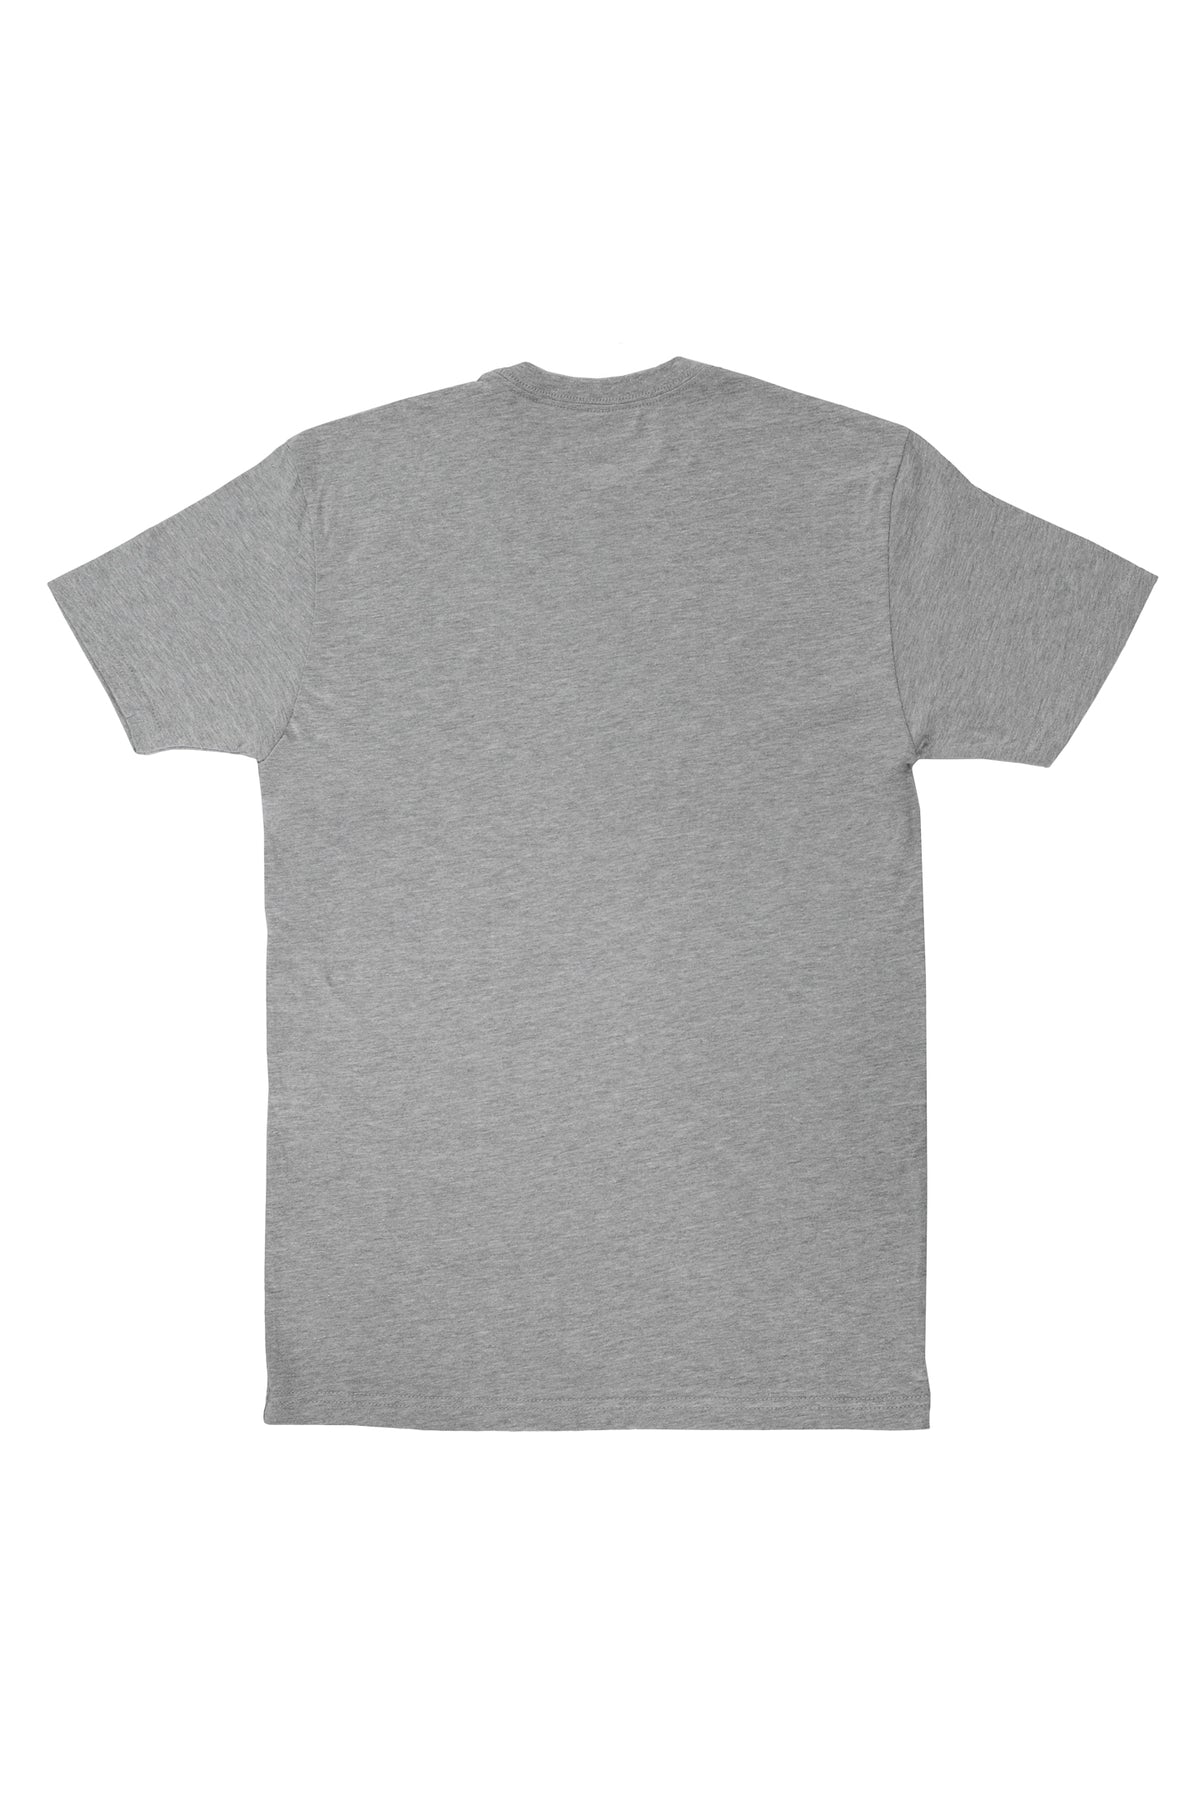 ALVA HEATHER GREY LOWKEY LOGO T-SHIRT